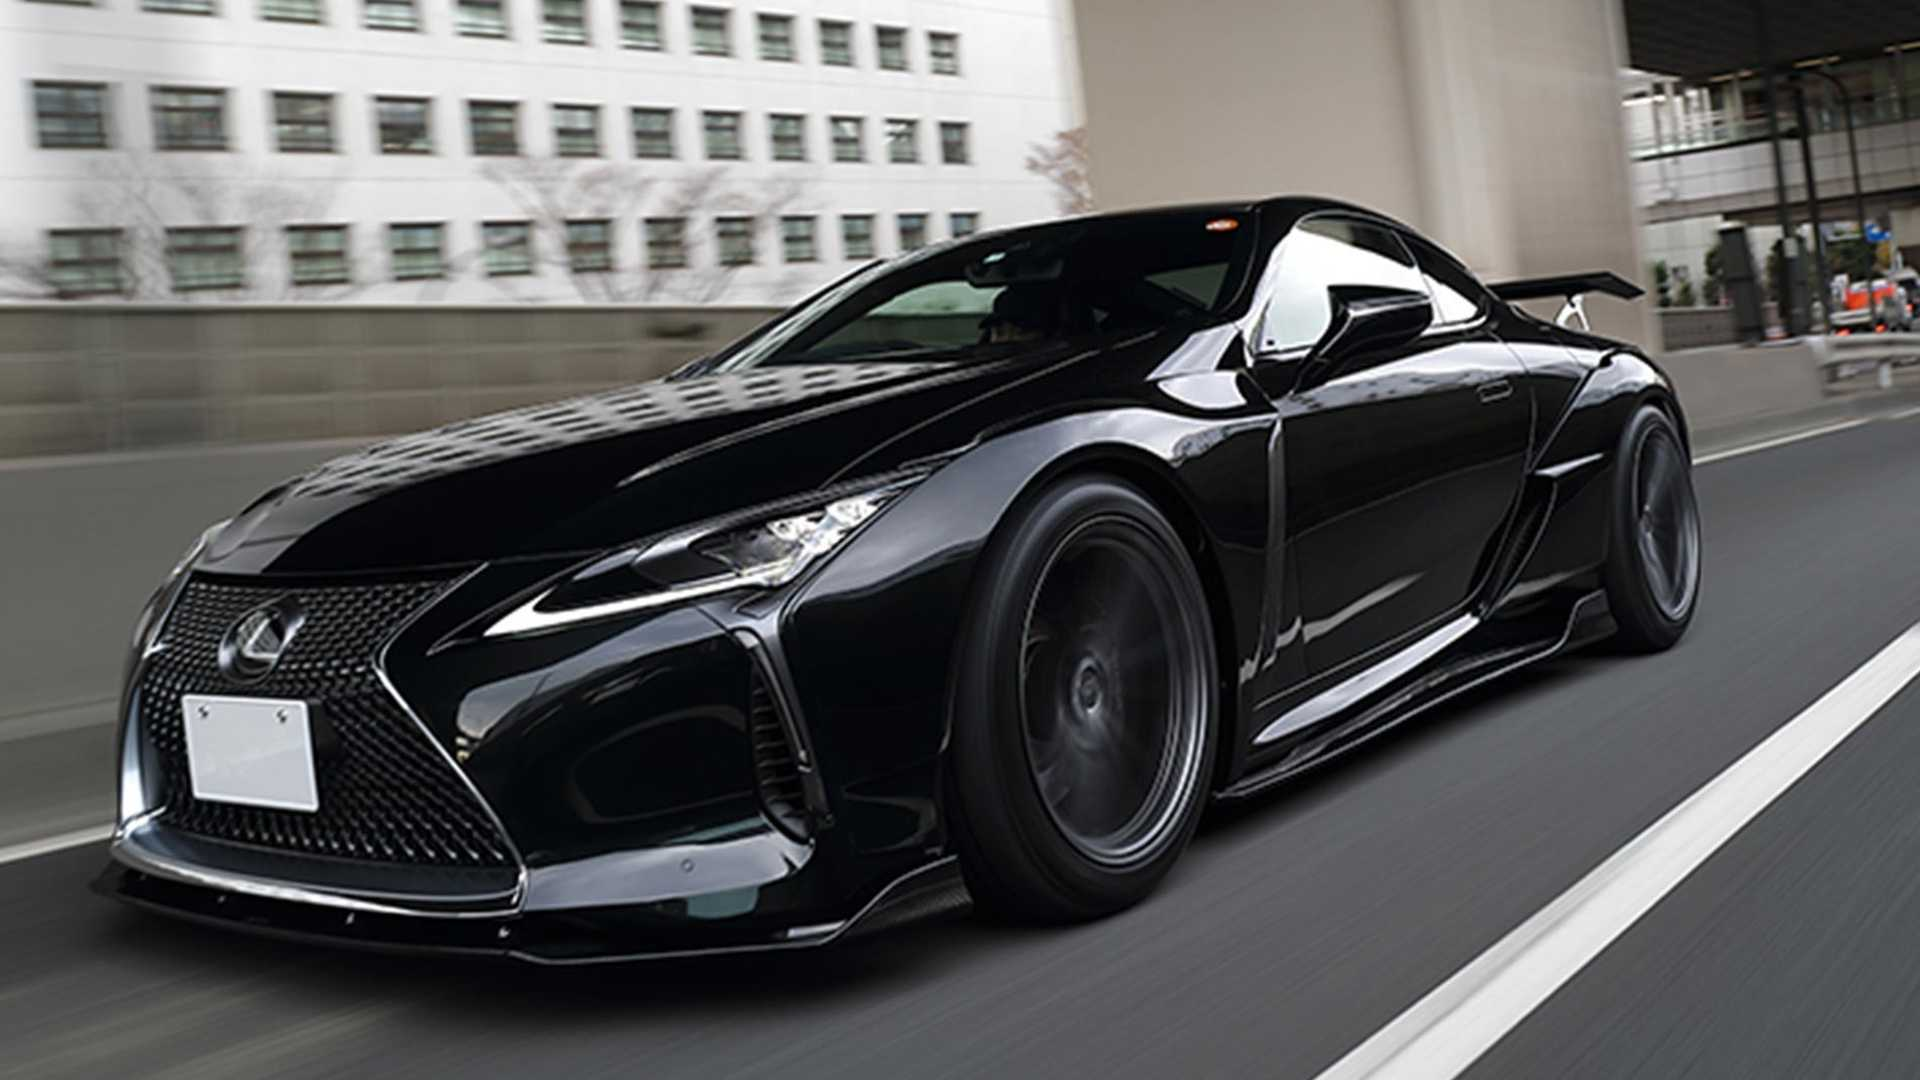 The team over at Japanese tuner Artisan Spirits has adapted its popular Black Label GT wide body kit to the Lexus LC series